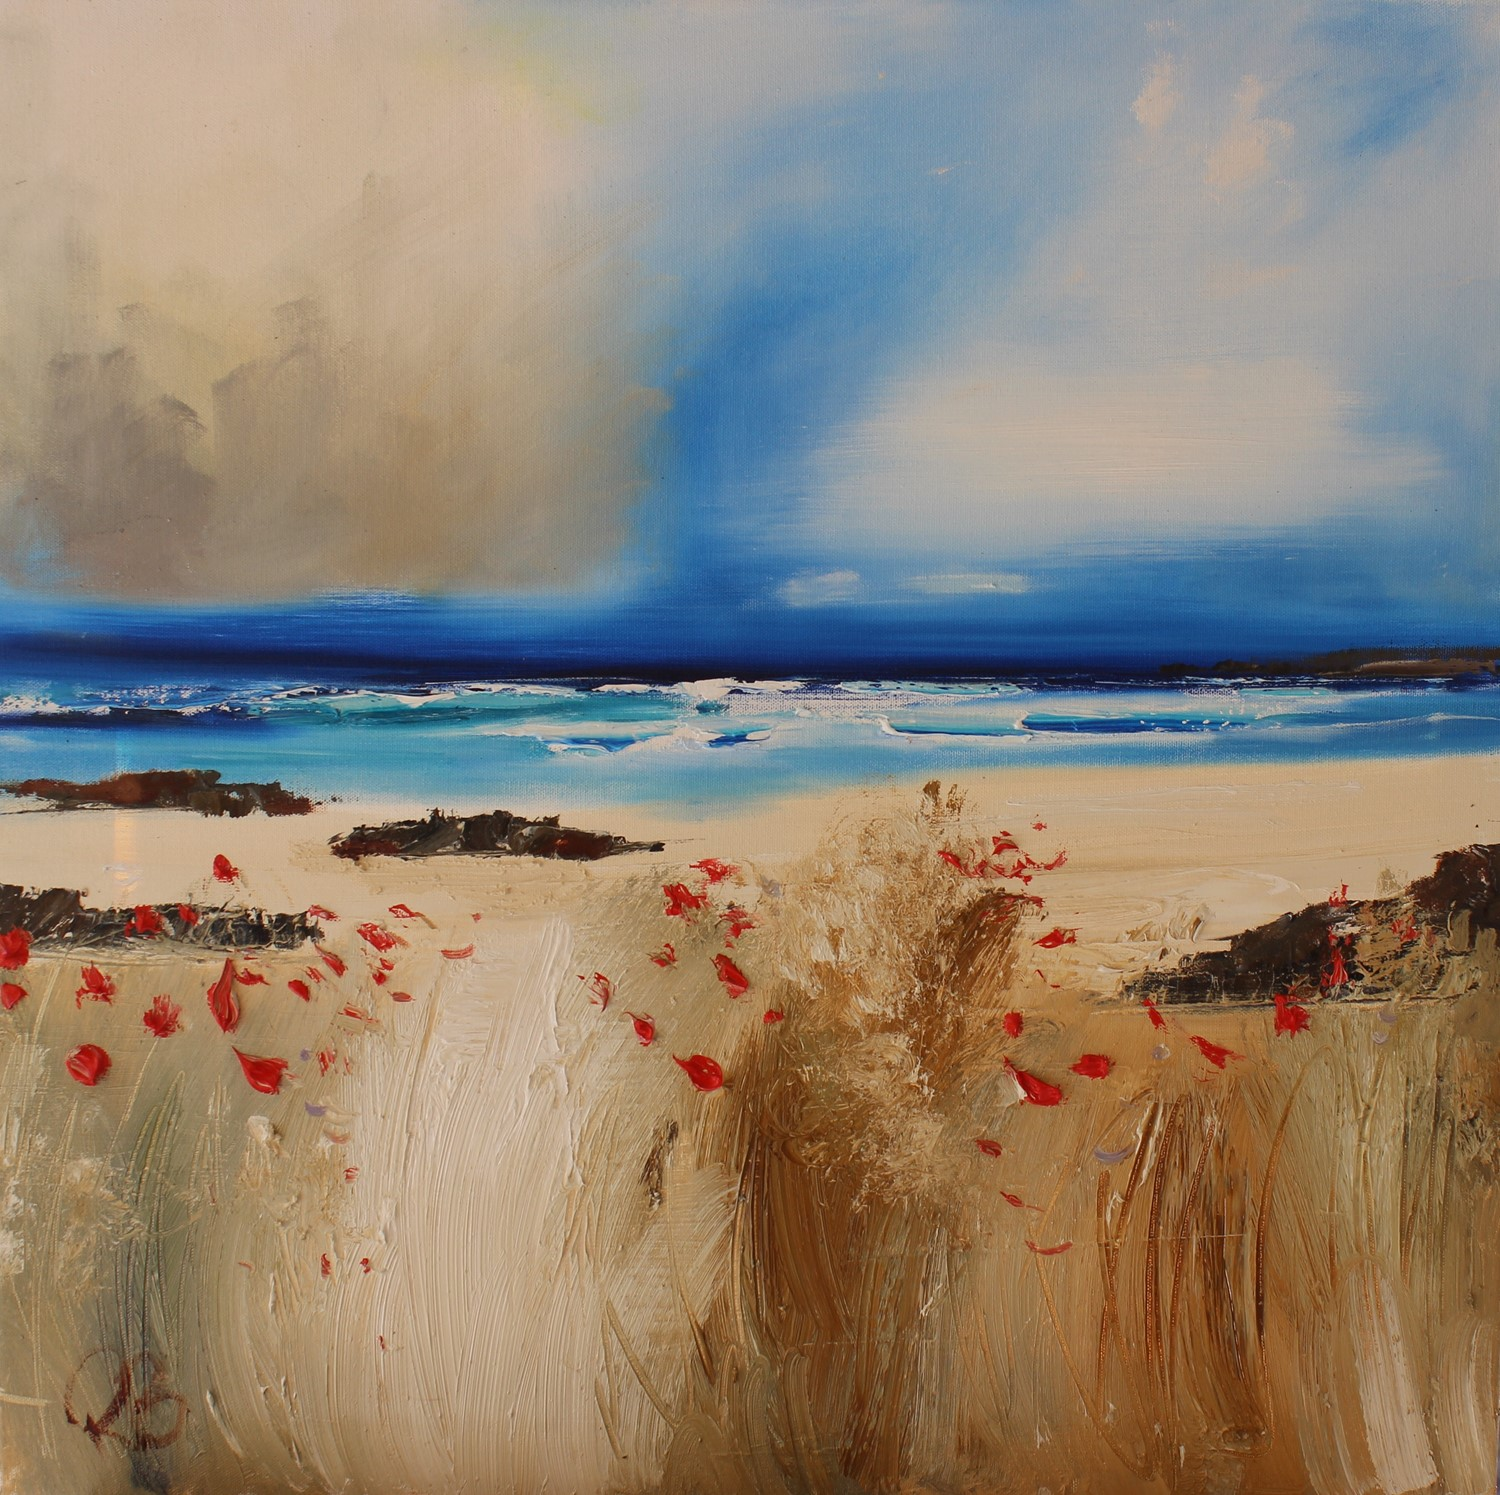 'Scattered Poppies by the Beach' by artist Rosanne Barr